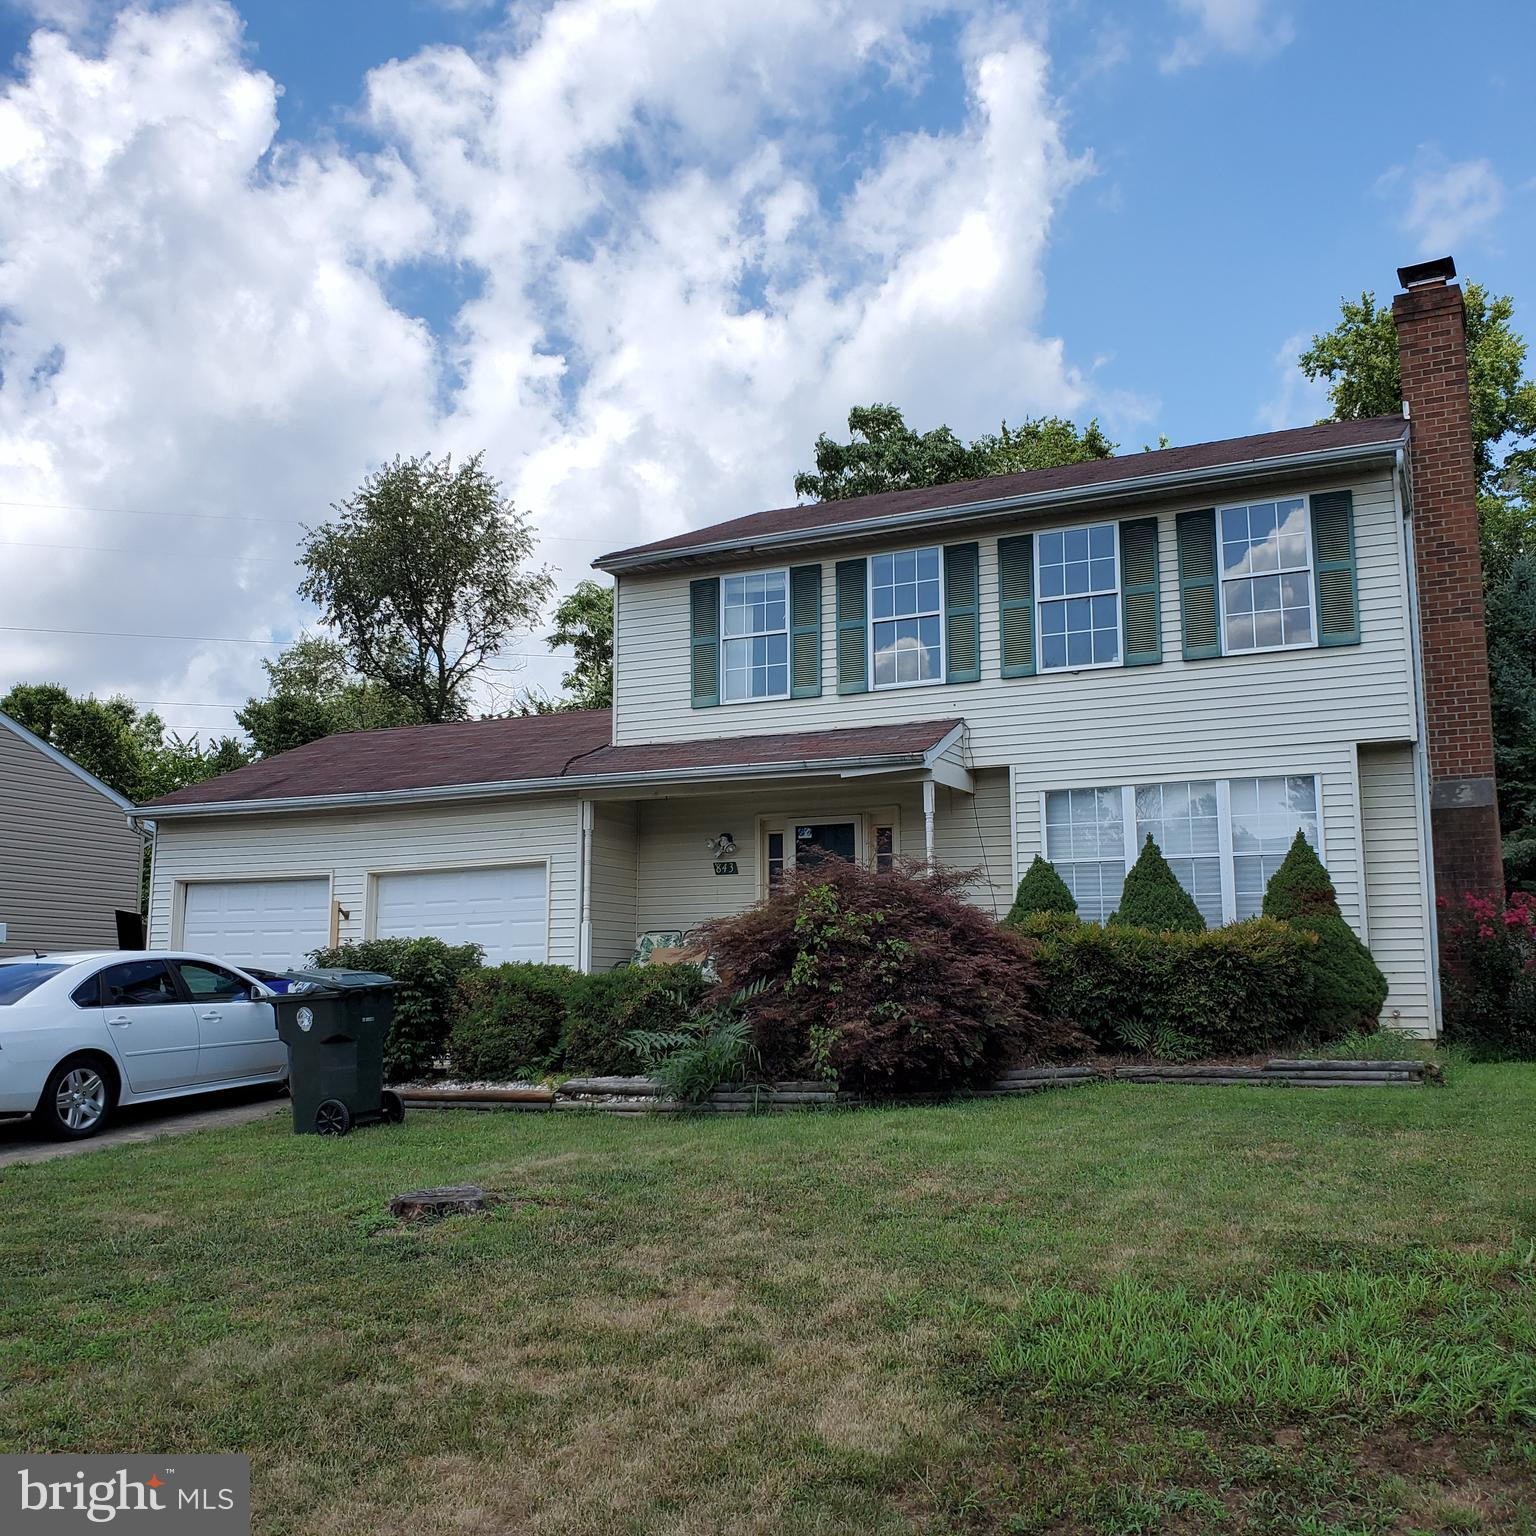 Investor Special - Great home with lots of potential with just a little elbow grease.  This home is